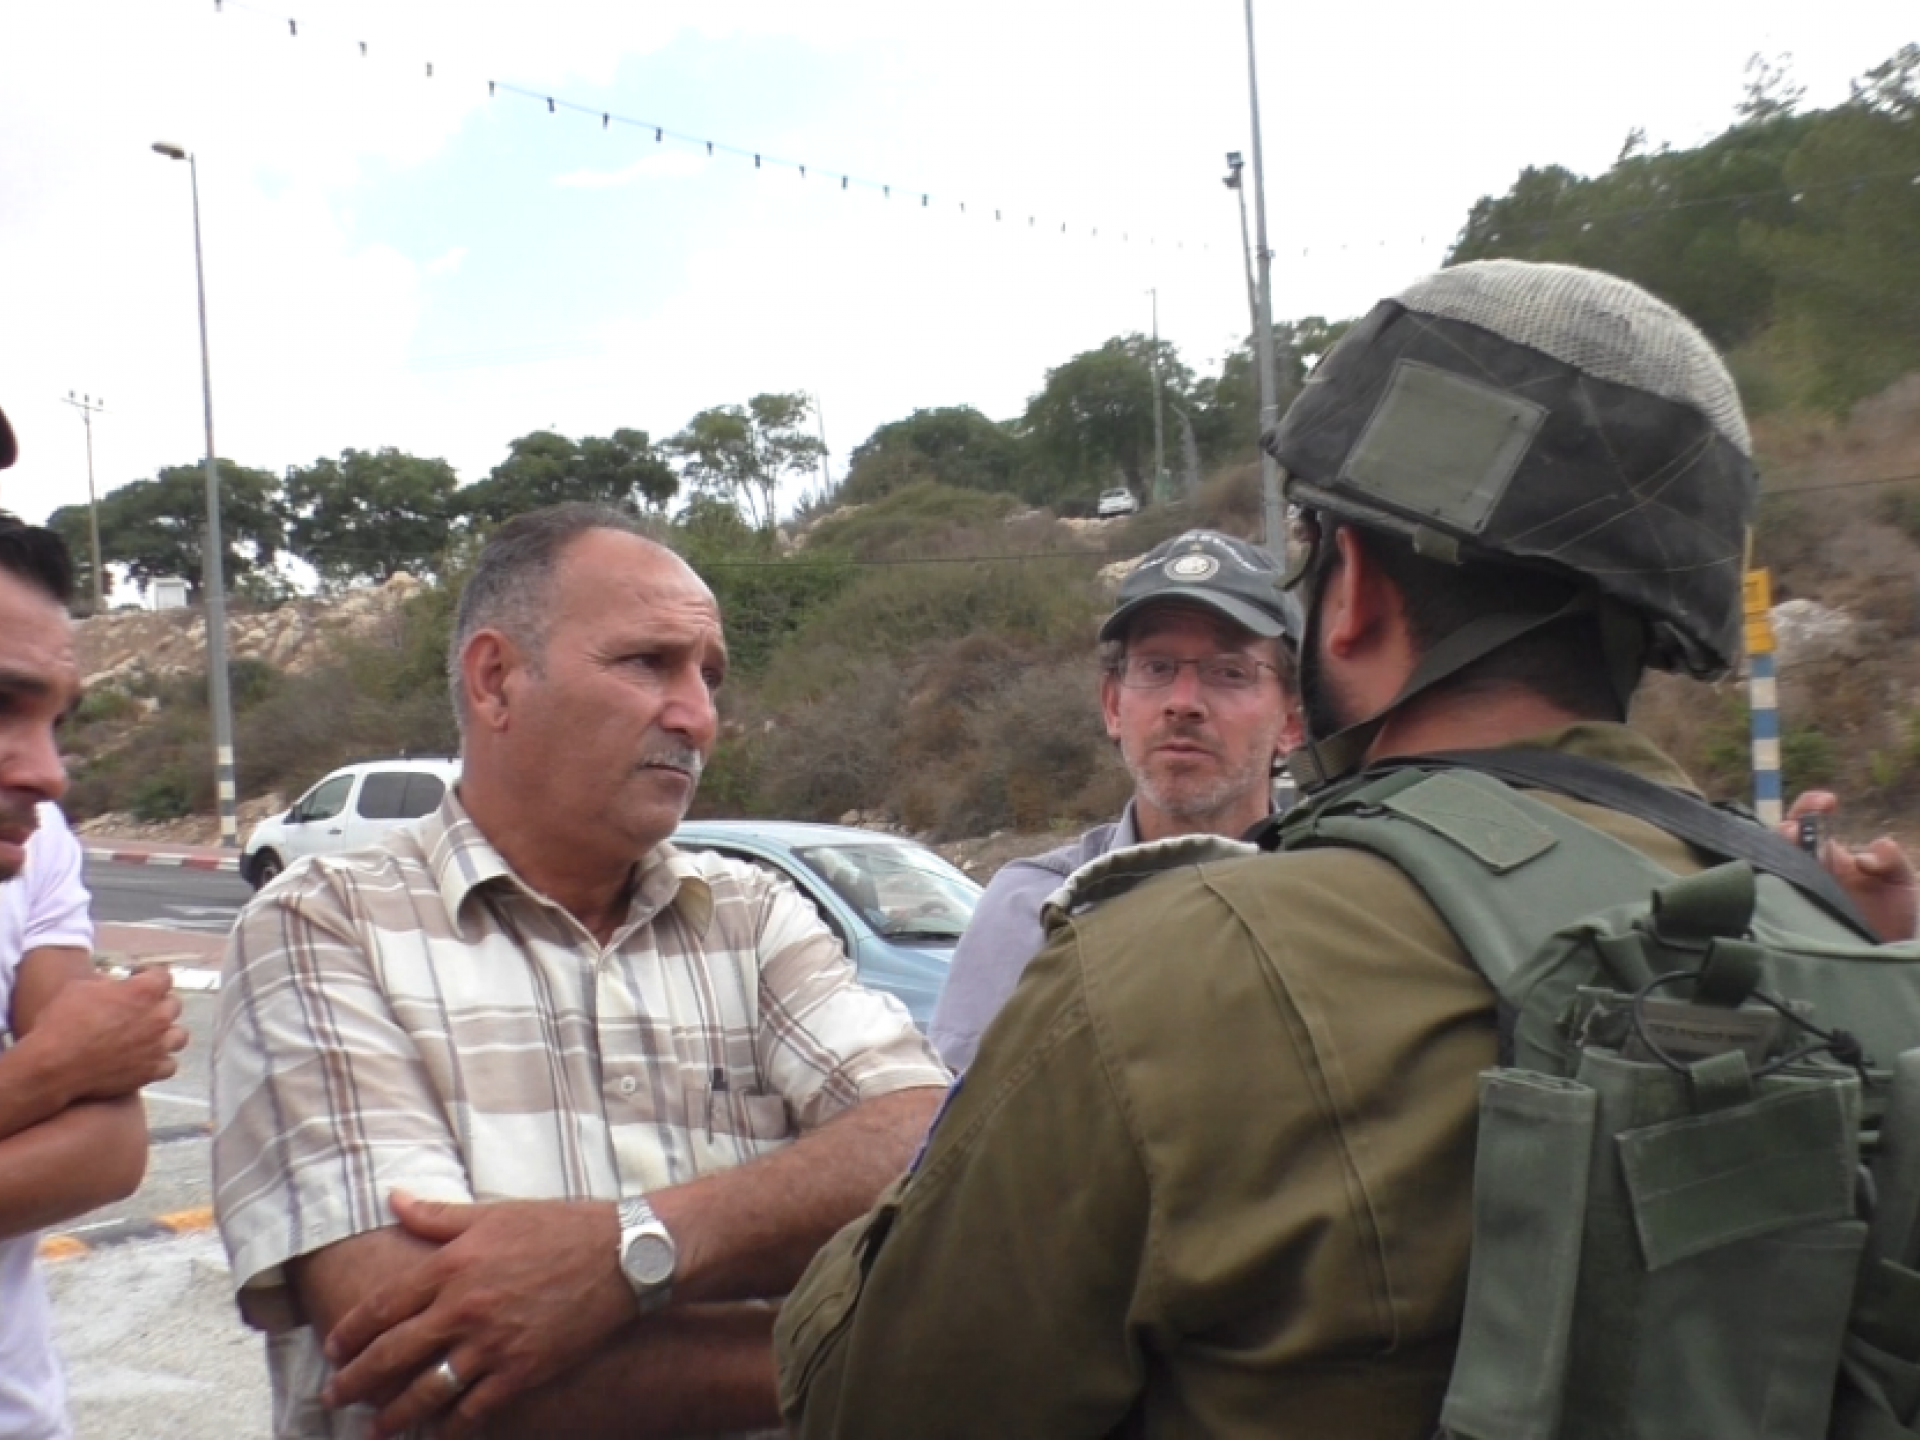 The landowner and his sons discussing access arrangements with the military commander